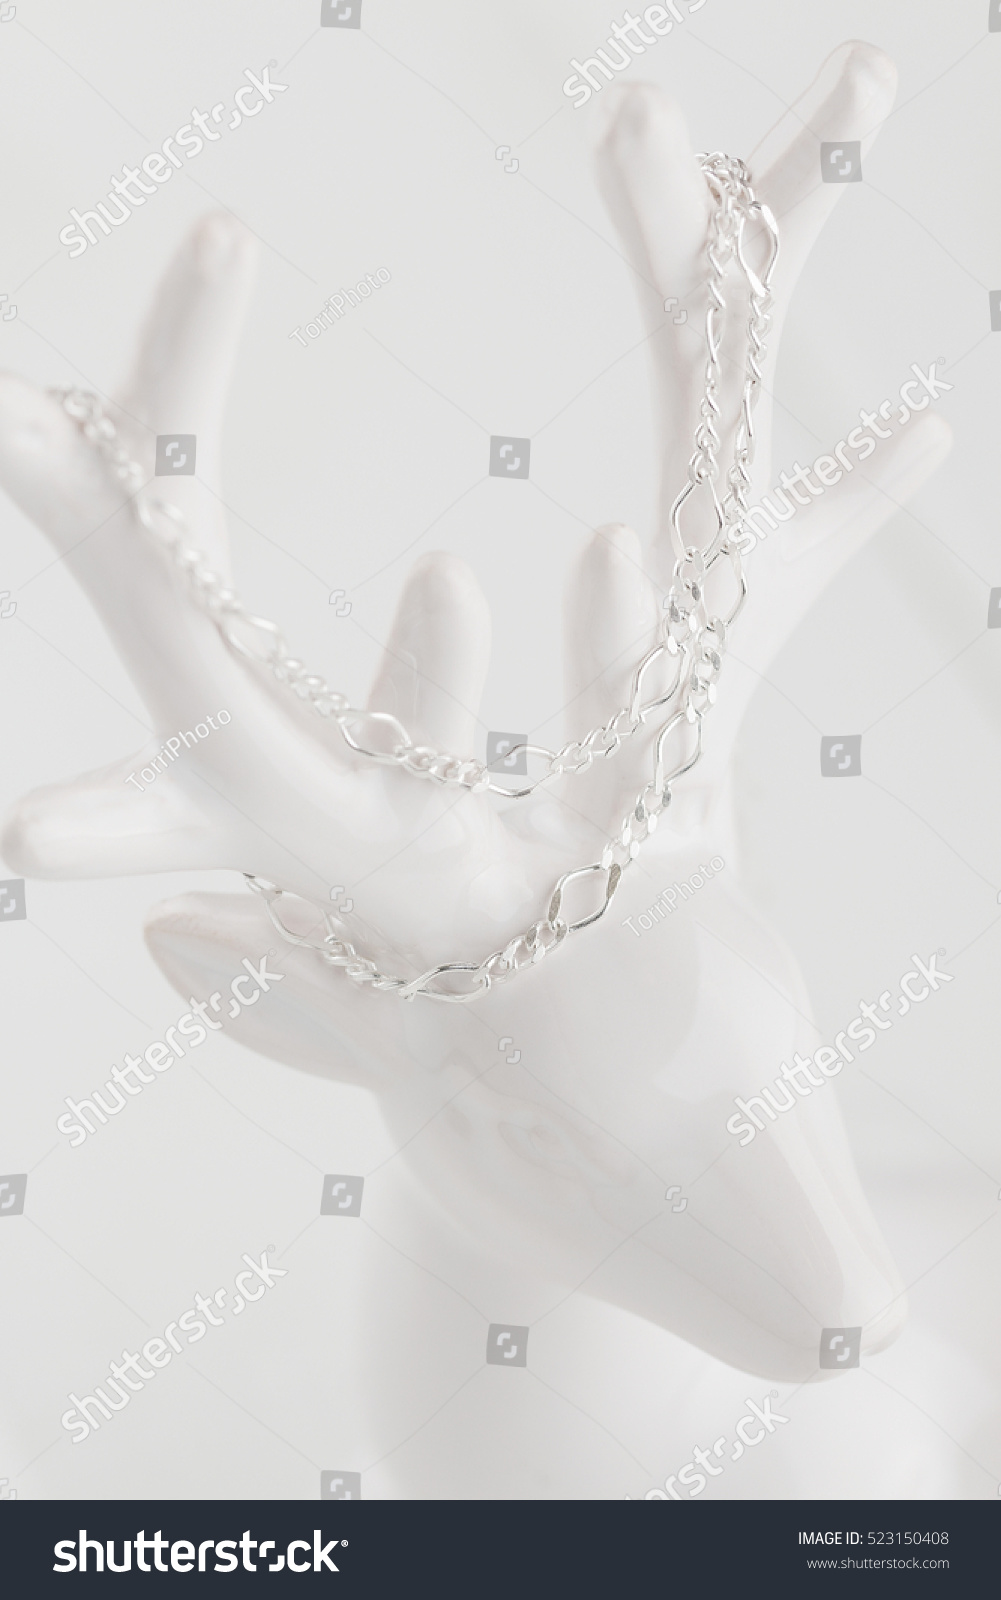 https://www.shutterstock.com/pic-523150408/stock-photo-sterling-silver-chain-on-white-jewelry-holder-still-life.html